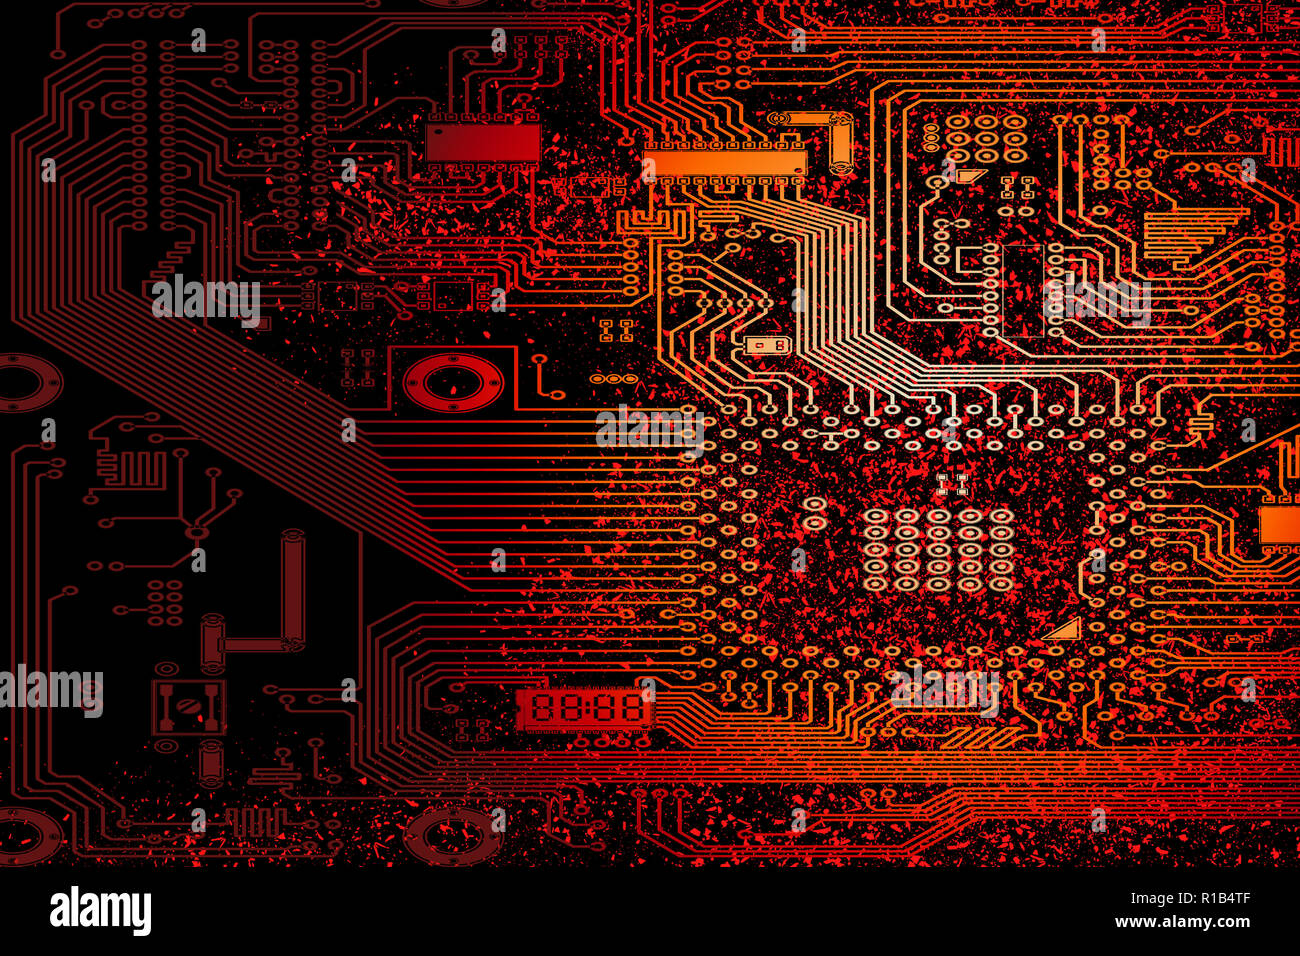 Circuit electronic board. Computer hardware part. Motherboard digital chip. Technologie science illustration. Integrated CPU microchip. Modern cyber p - Stock Image